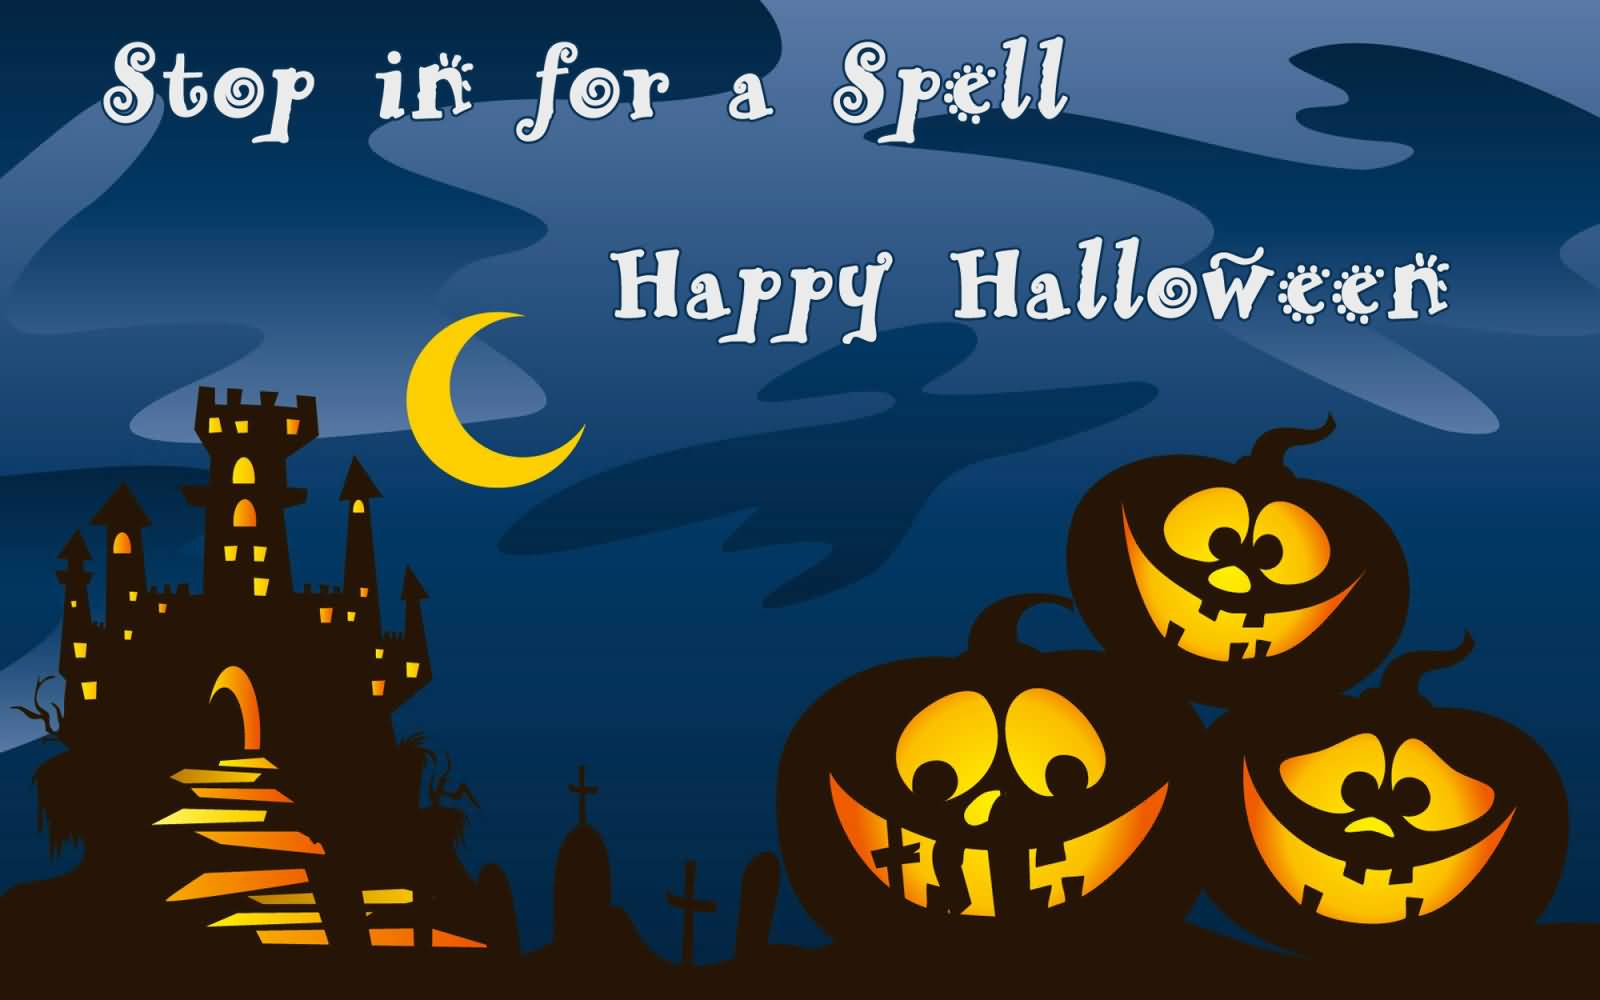 happy halloween wishes, messages and greetings to celebrate the